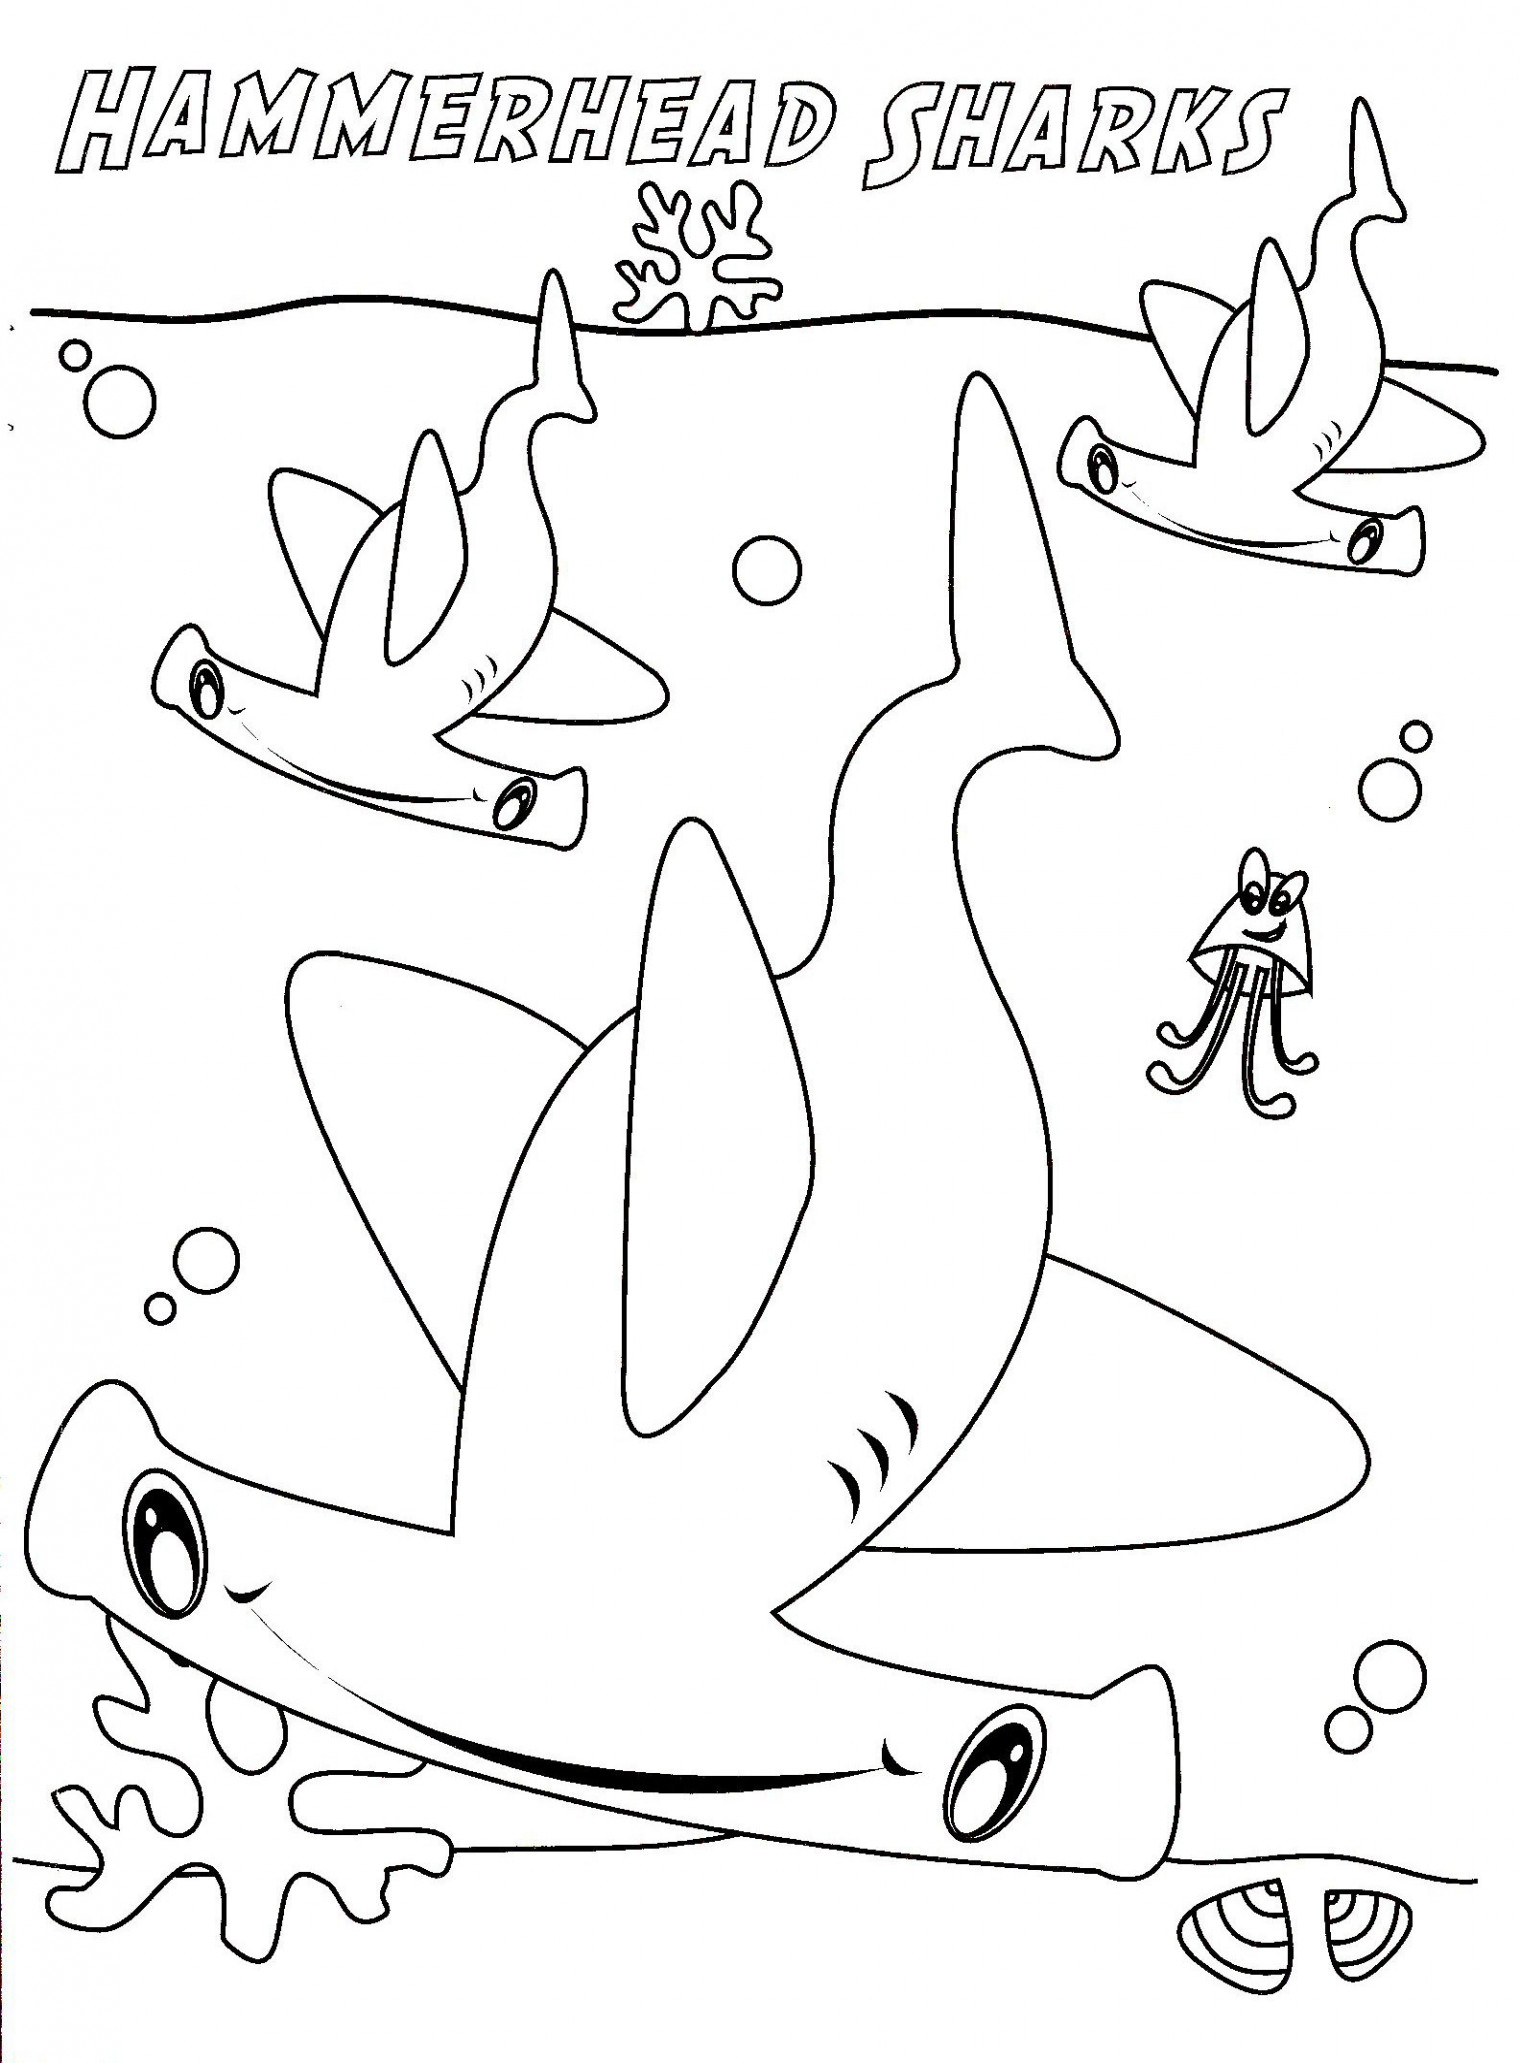 Coloring Pages Sharks Shark Coloring Pages Sharks Coloring Pages Great White Shark